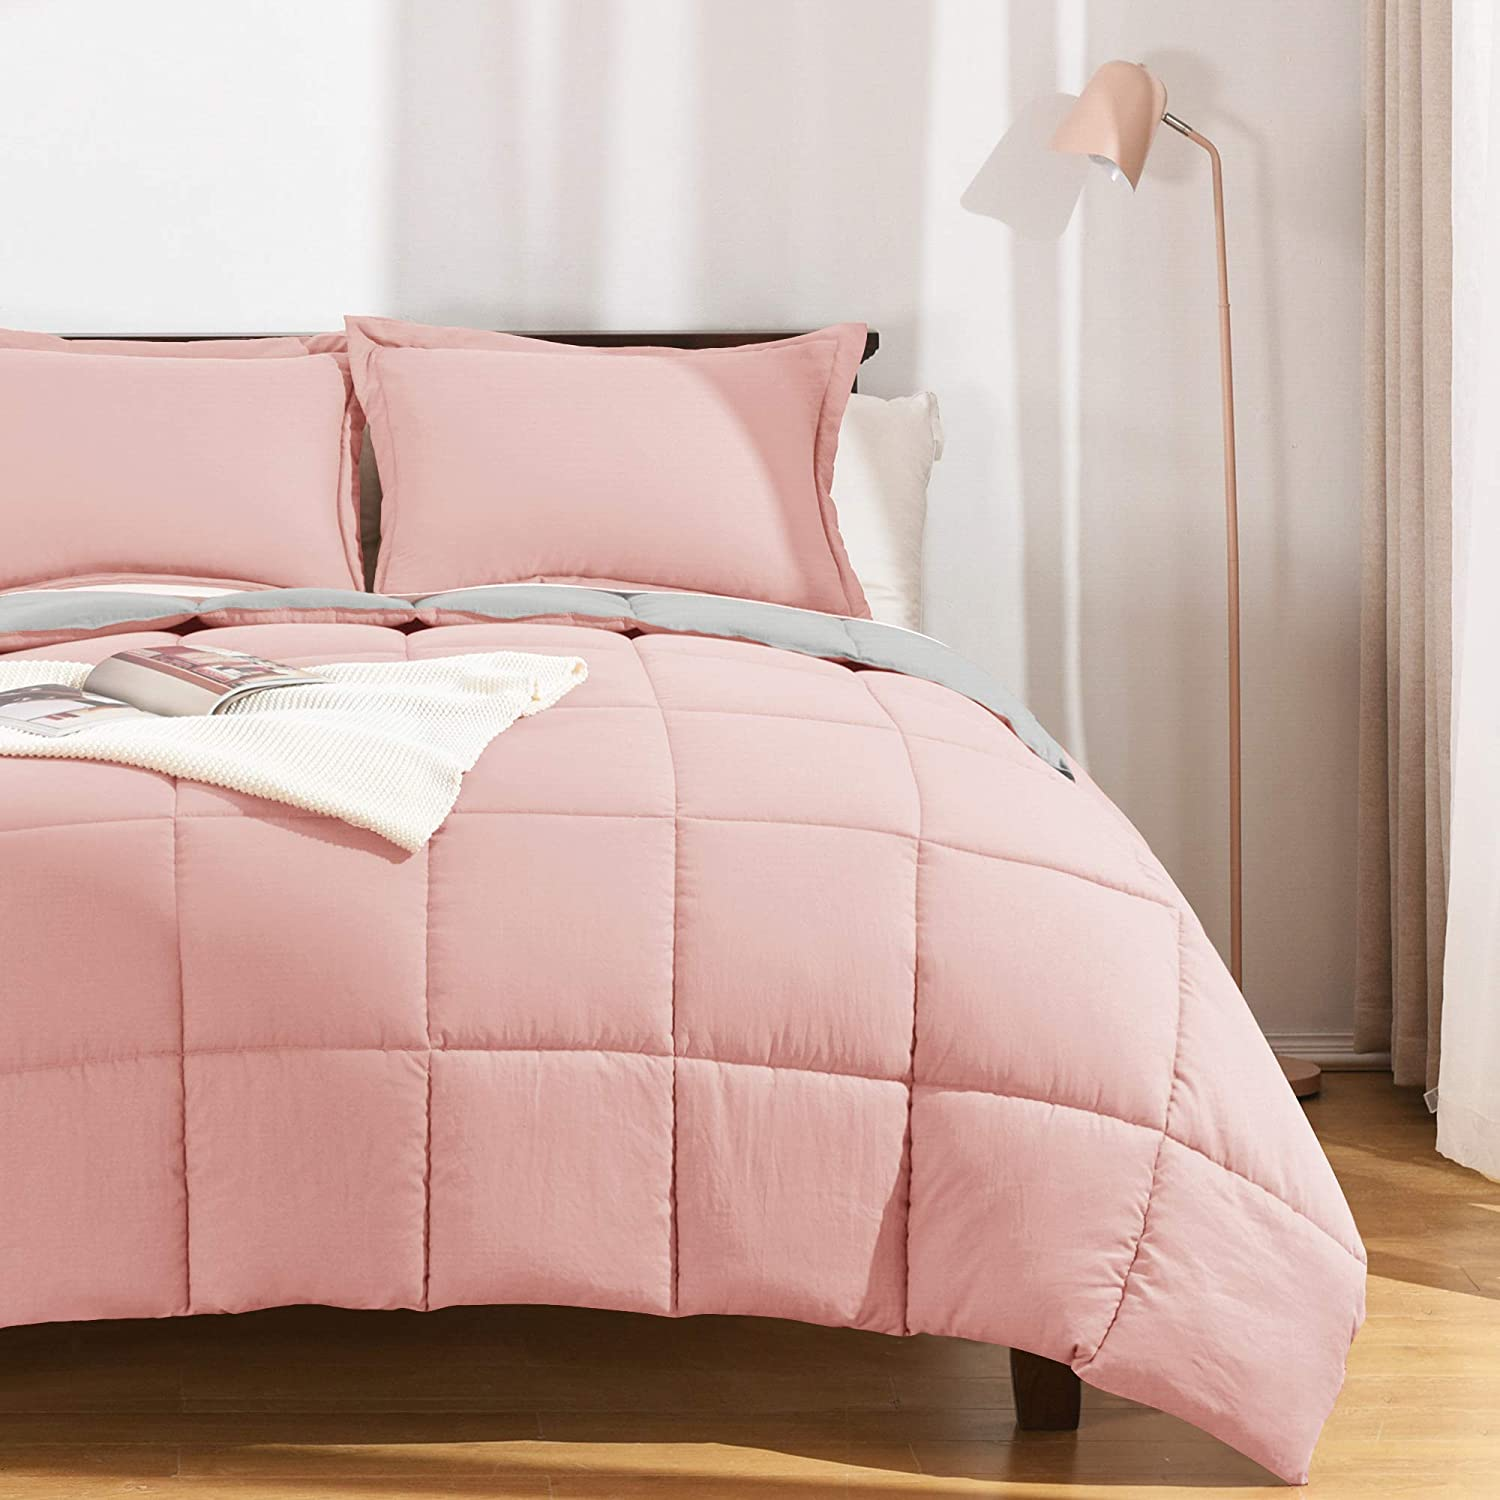 Basic Beyond 100% Washed Microfiber We OFFer at cheap prices Comforter King - Set Size Pi cheap